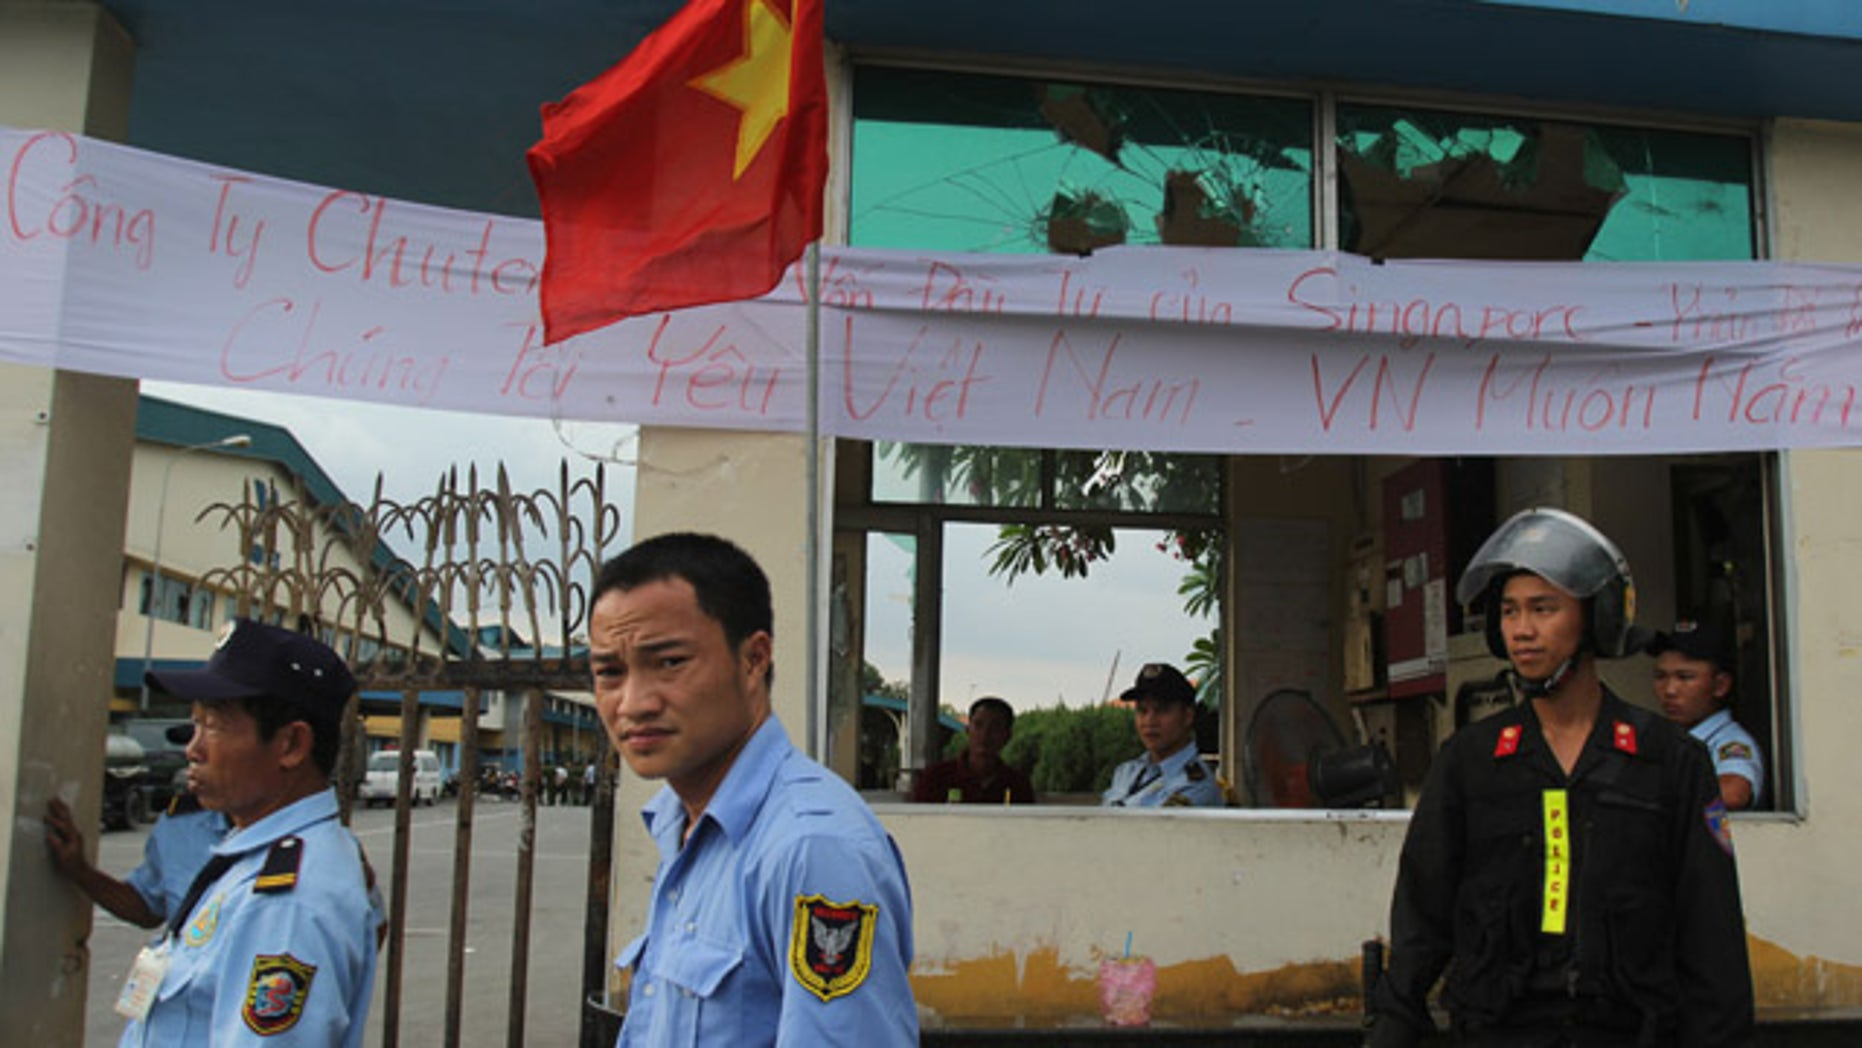 May 17, 2014: Security staff guard the entrance to a Singaporean factory in an industrial park in Binh Duong province, Vietnam after mobs attacked foreign owned factories following anti-China protests. (AP Photo/Hau Dinh)